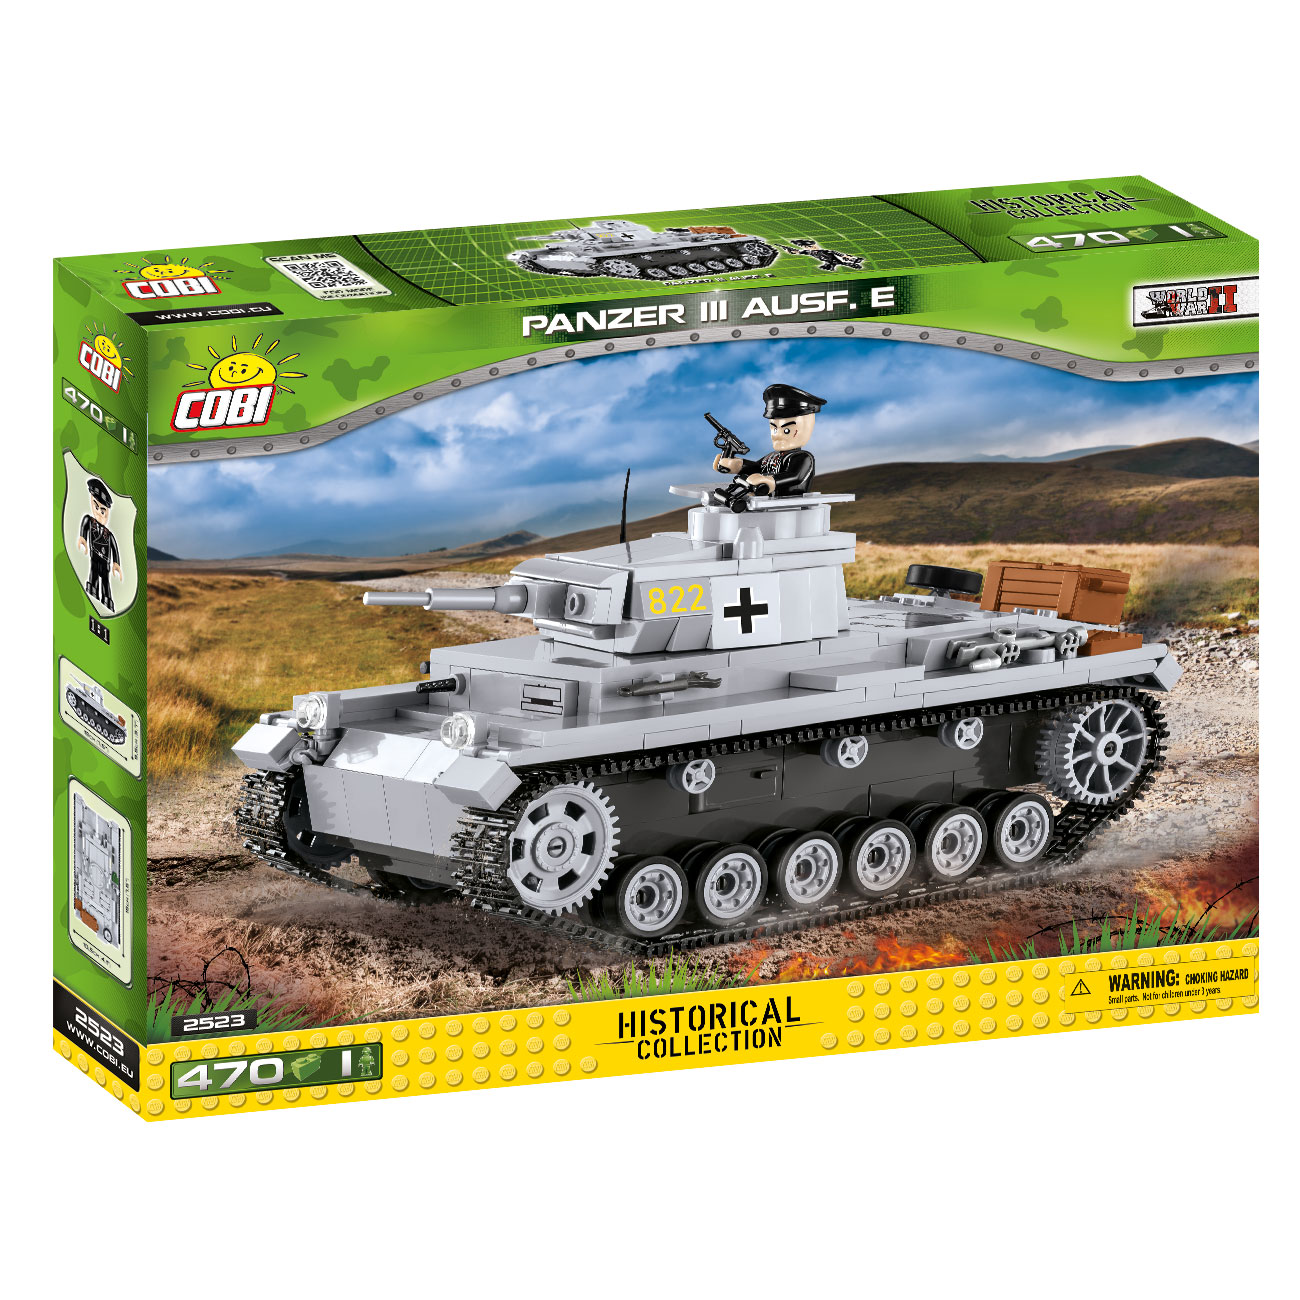 Cobi Historical Collection Bausatz Panzer III Ausf. E 470 Teile 2523 2